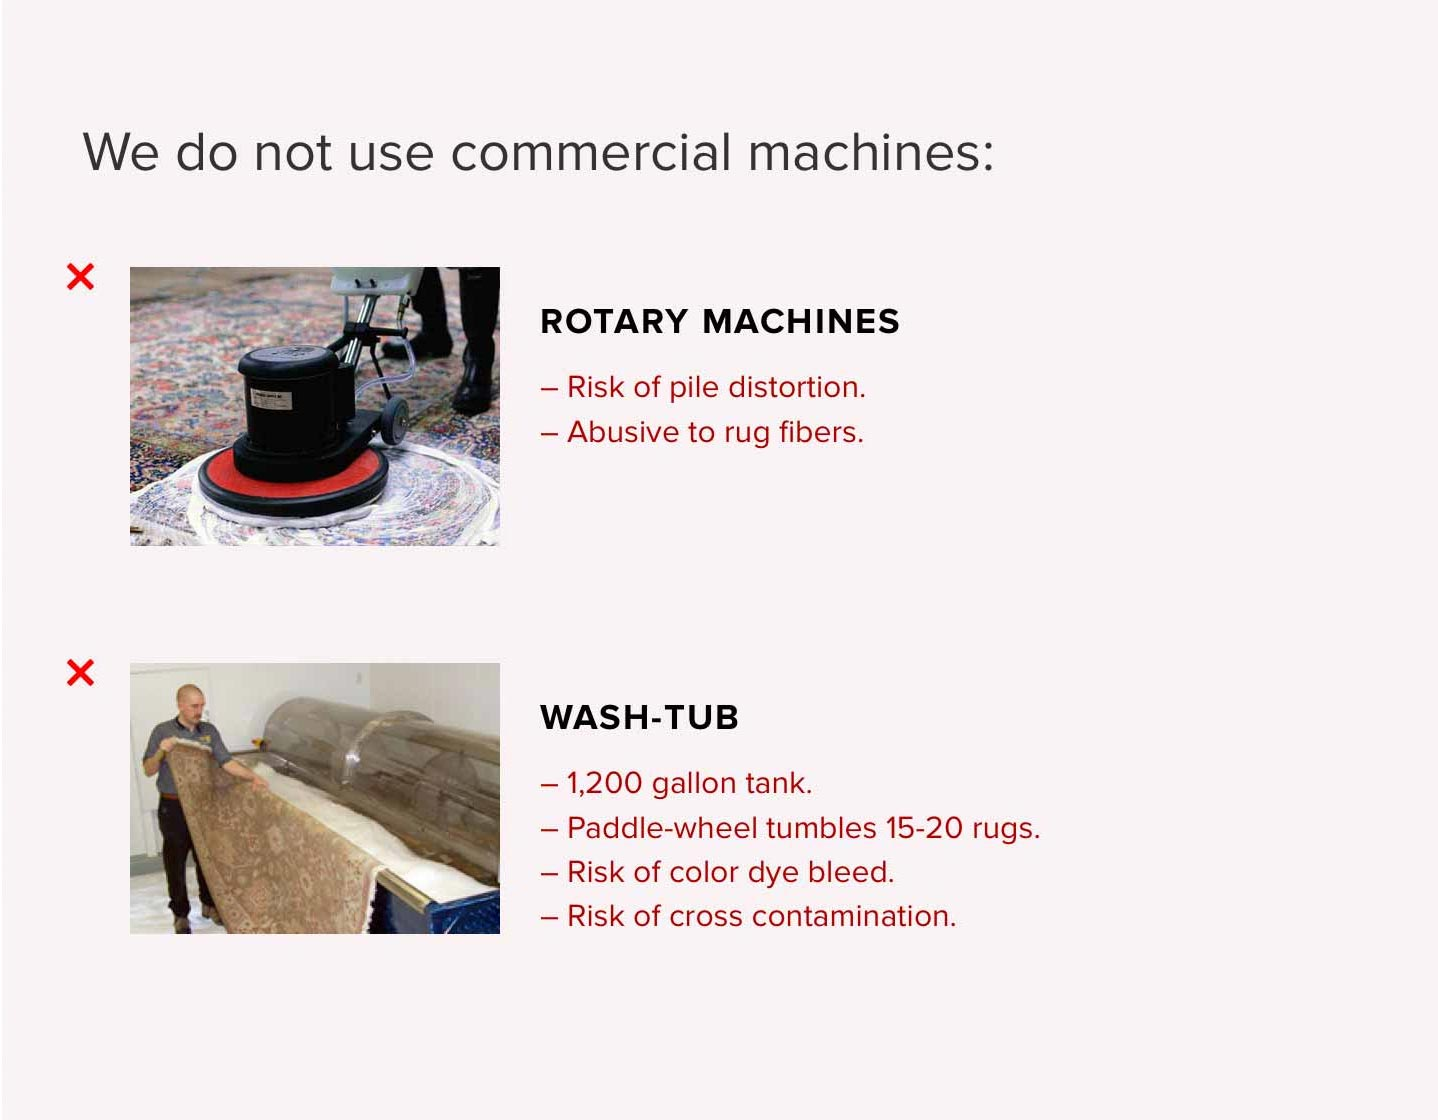 Rug-Cleaning-Machines2